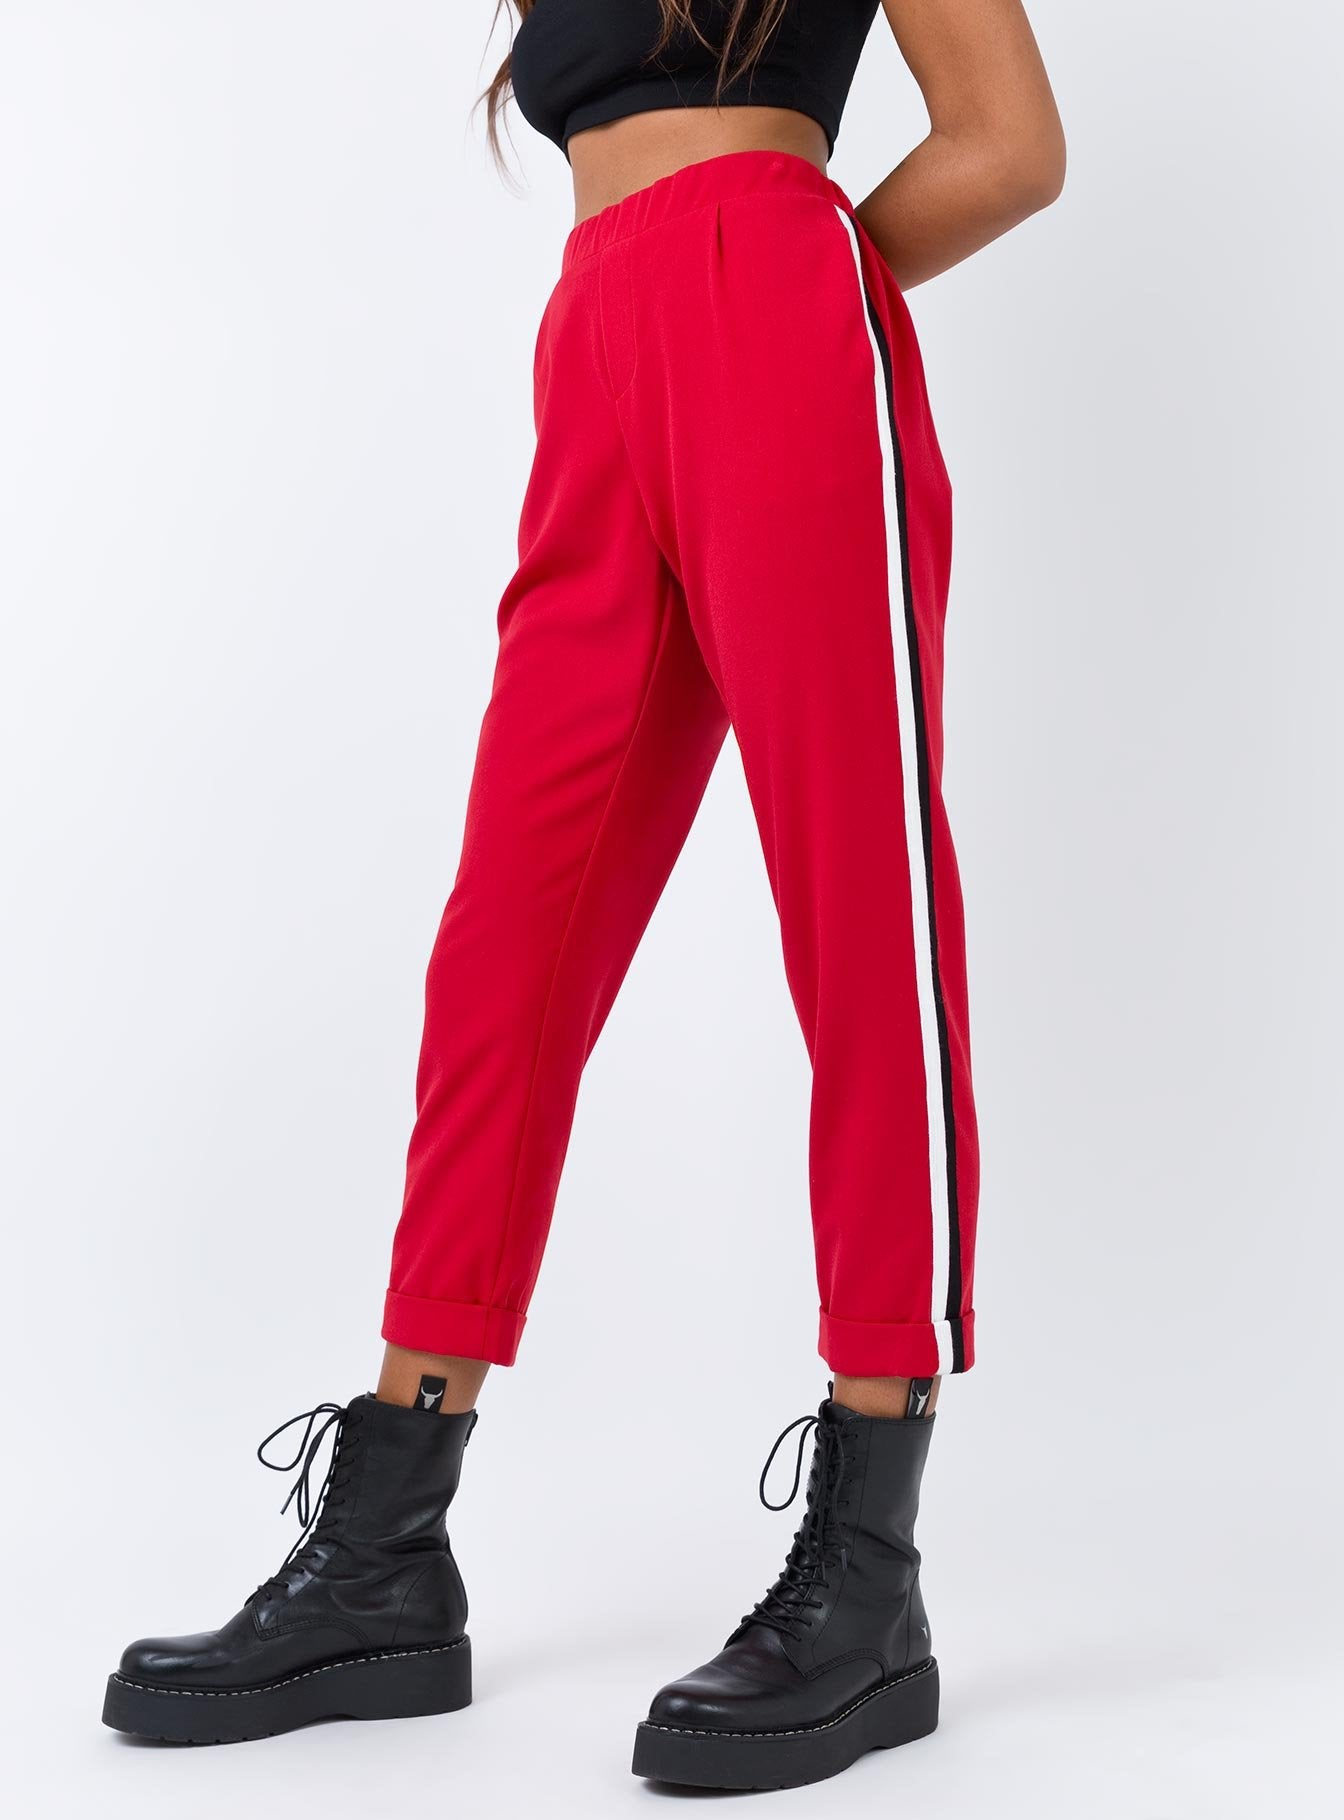 The McQueen Pants Red